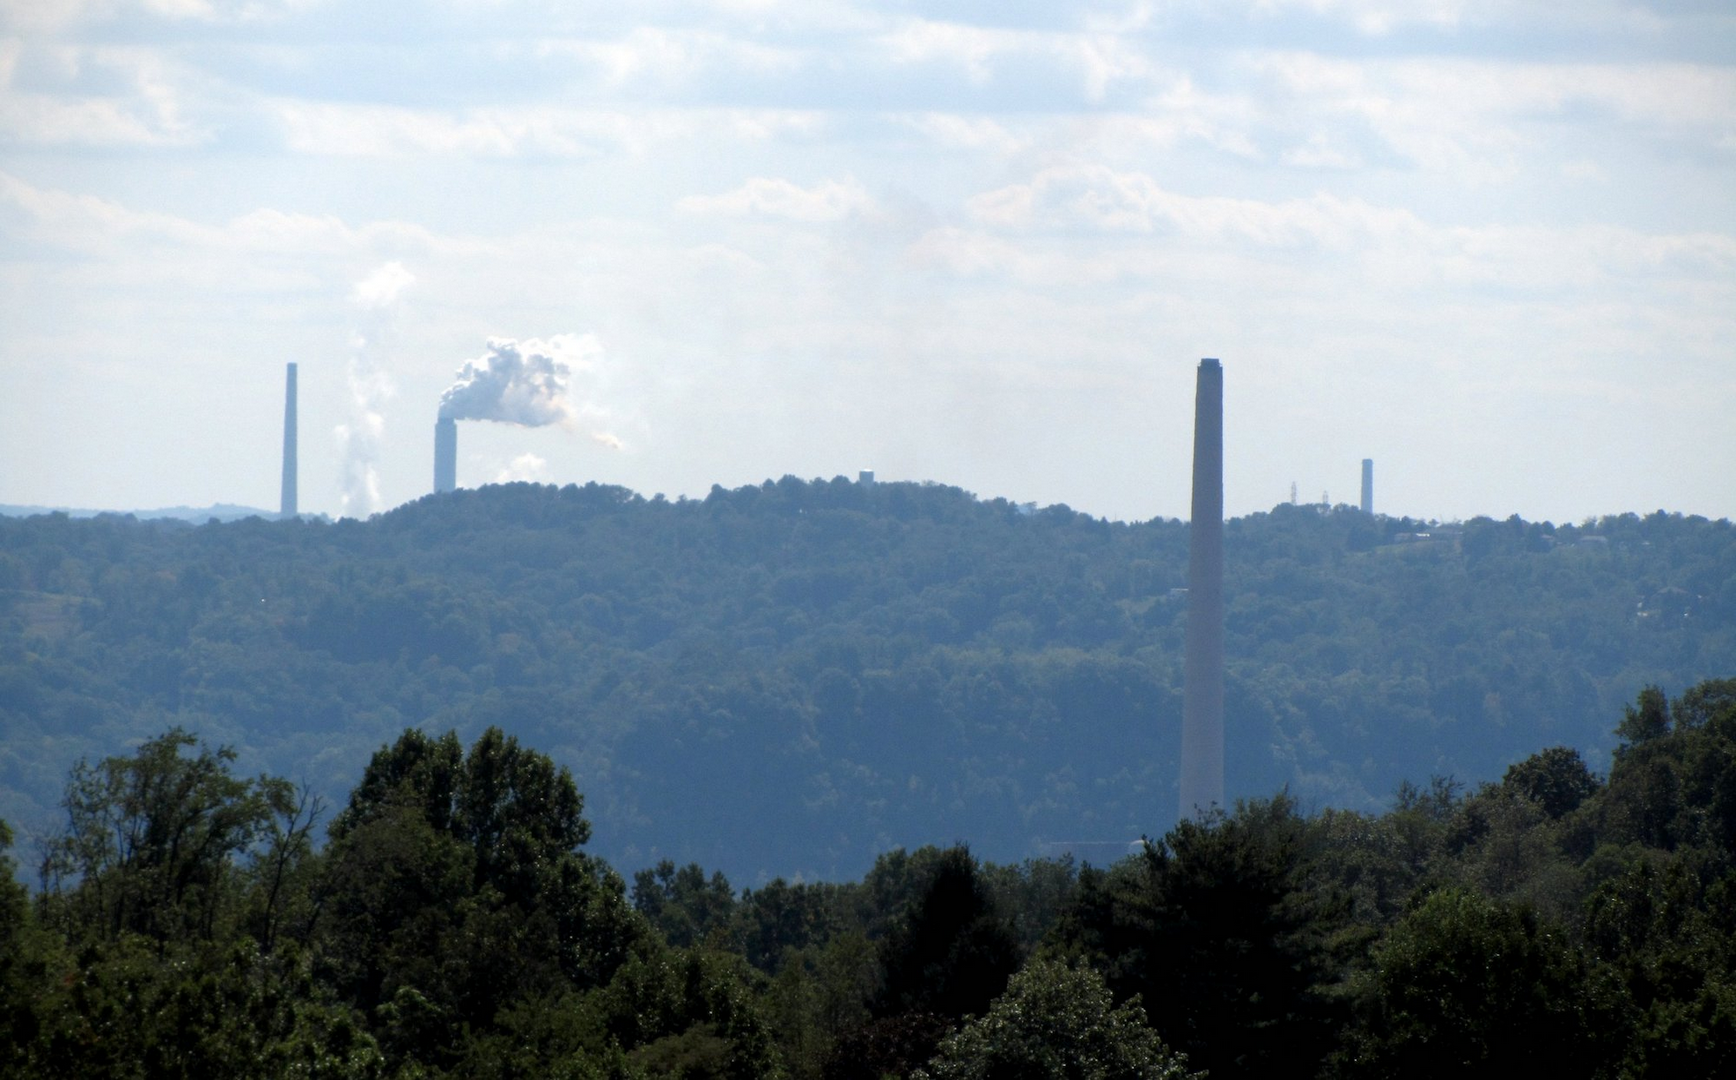 Smokestacks jutting out from the tree cover of the Ohio Valley